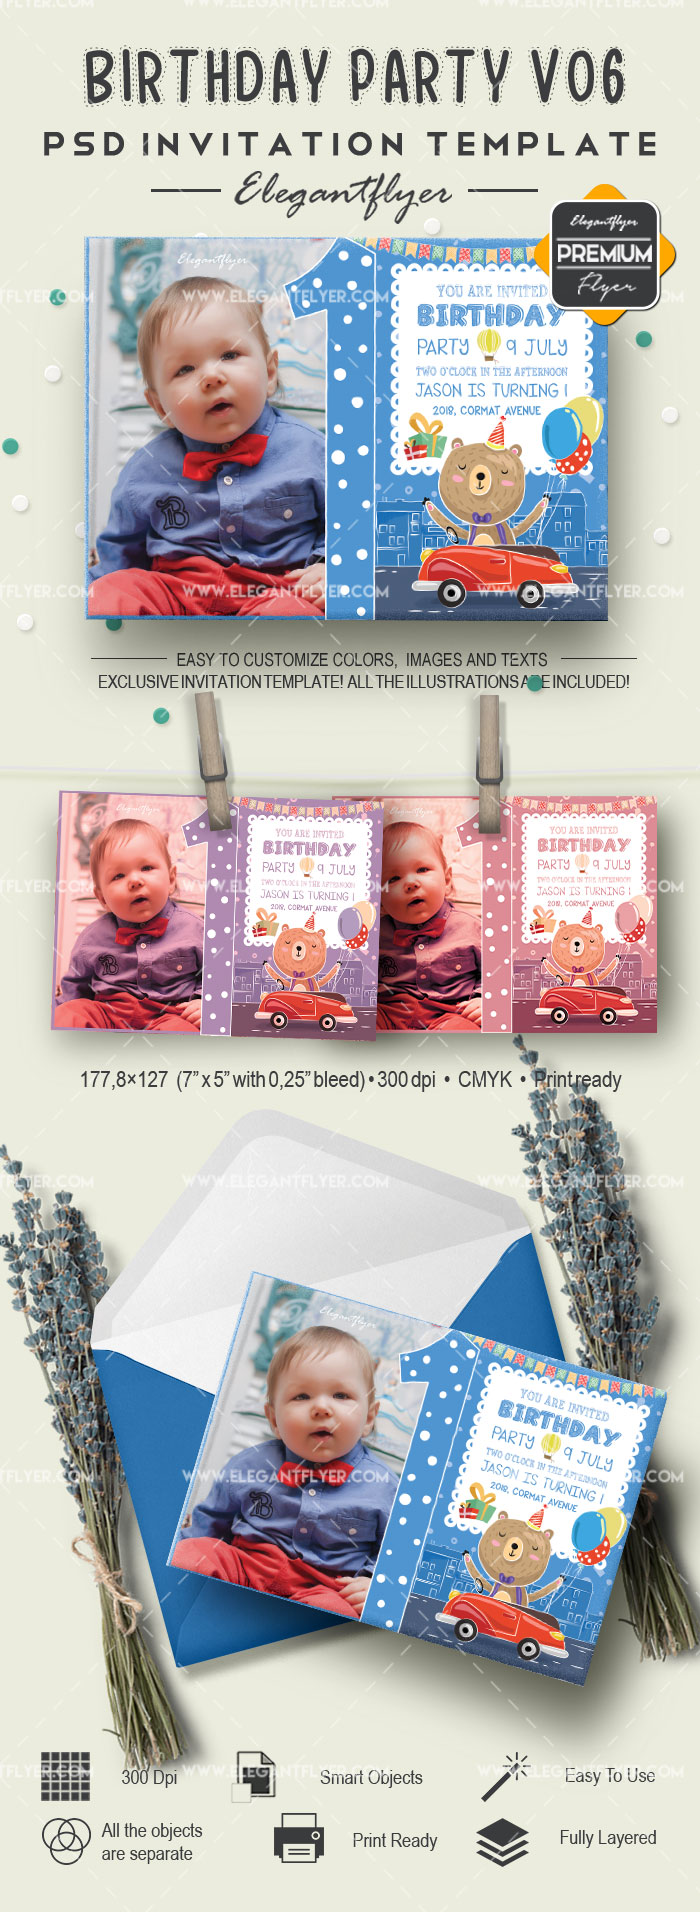 Birthday Party v06 – Invitation PSD Template